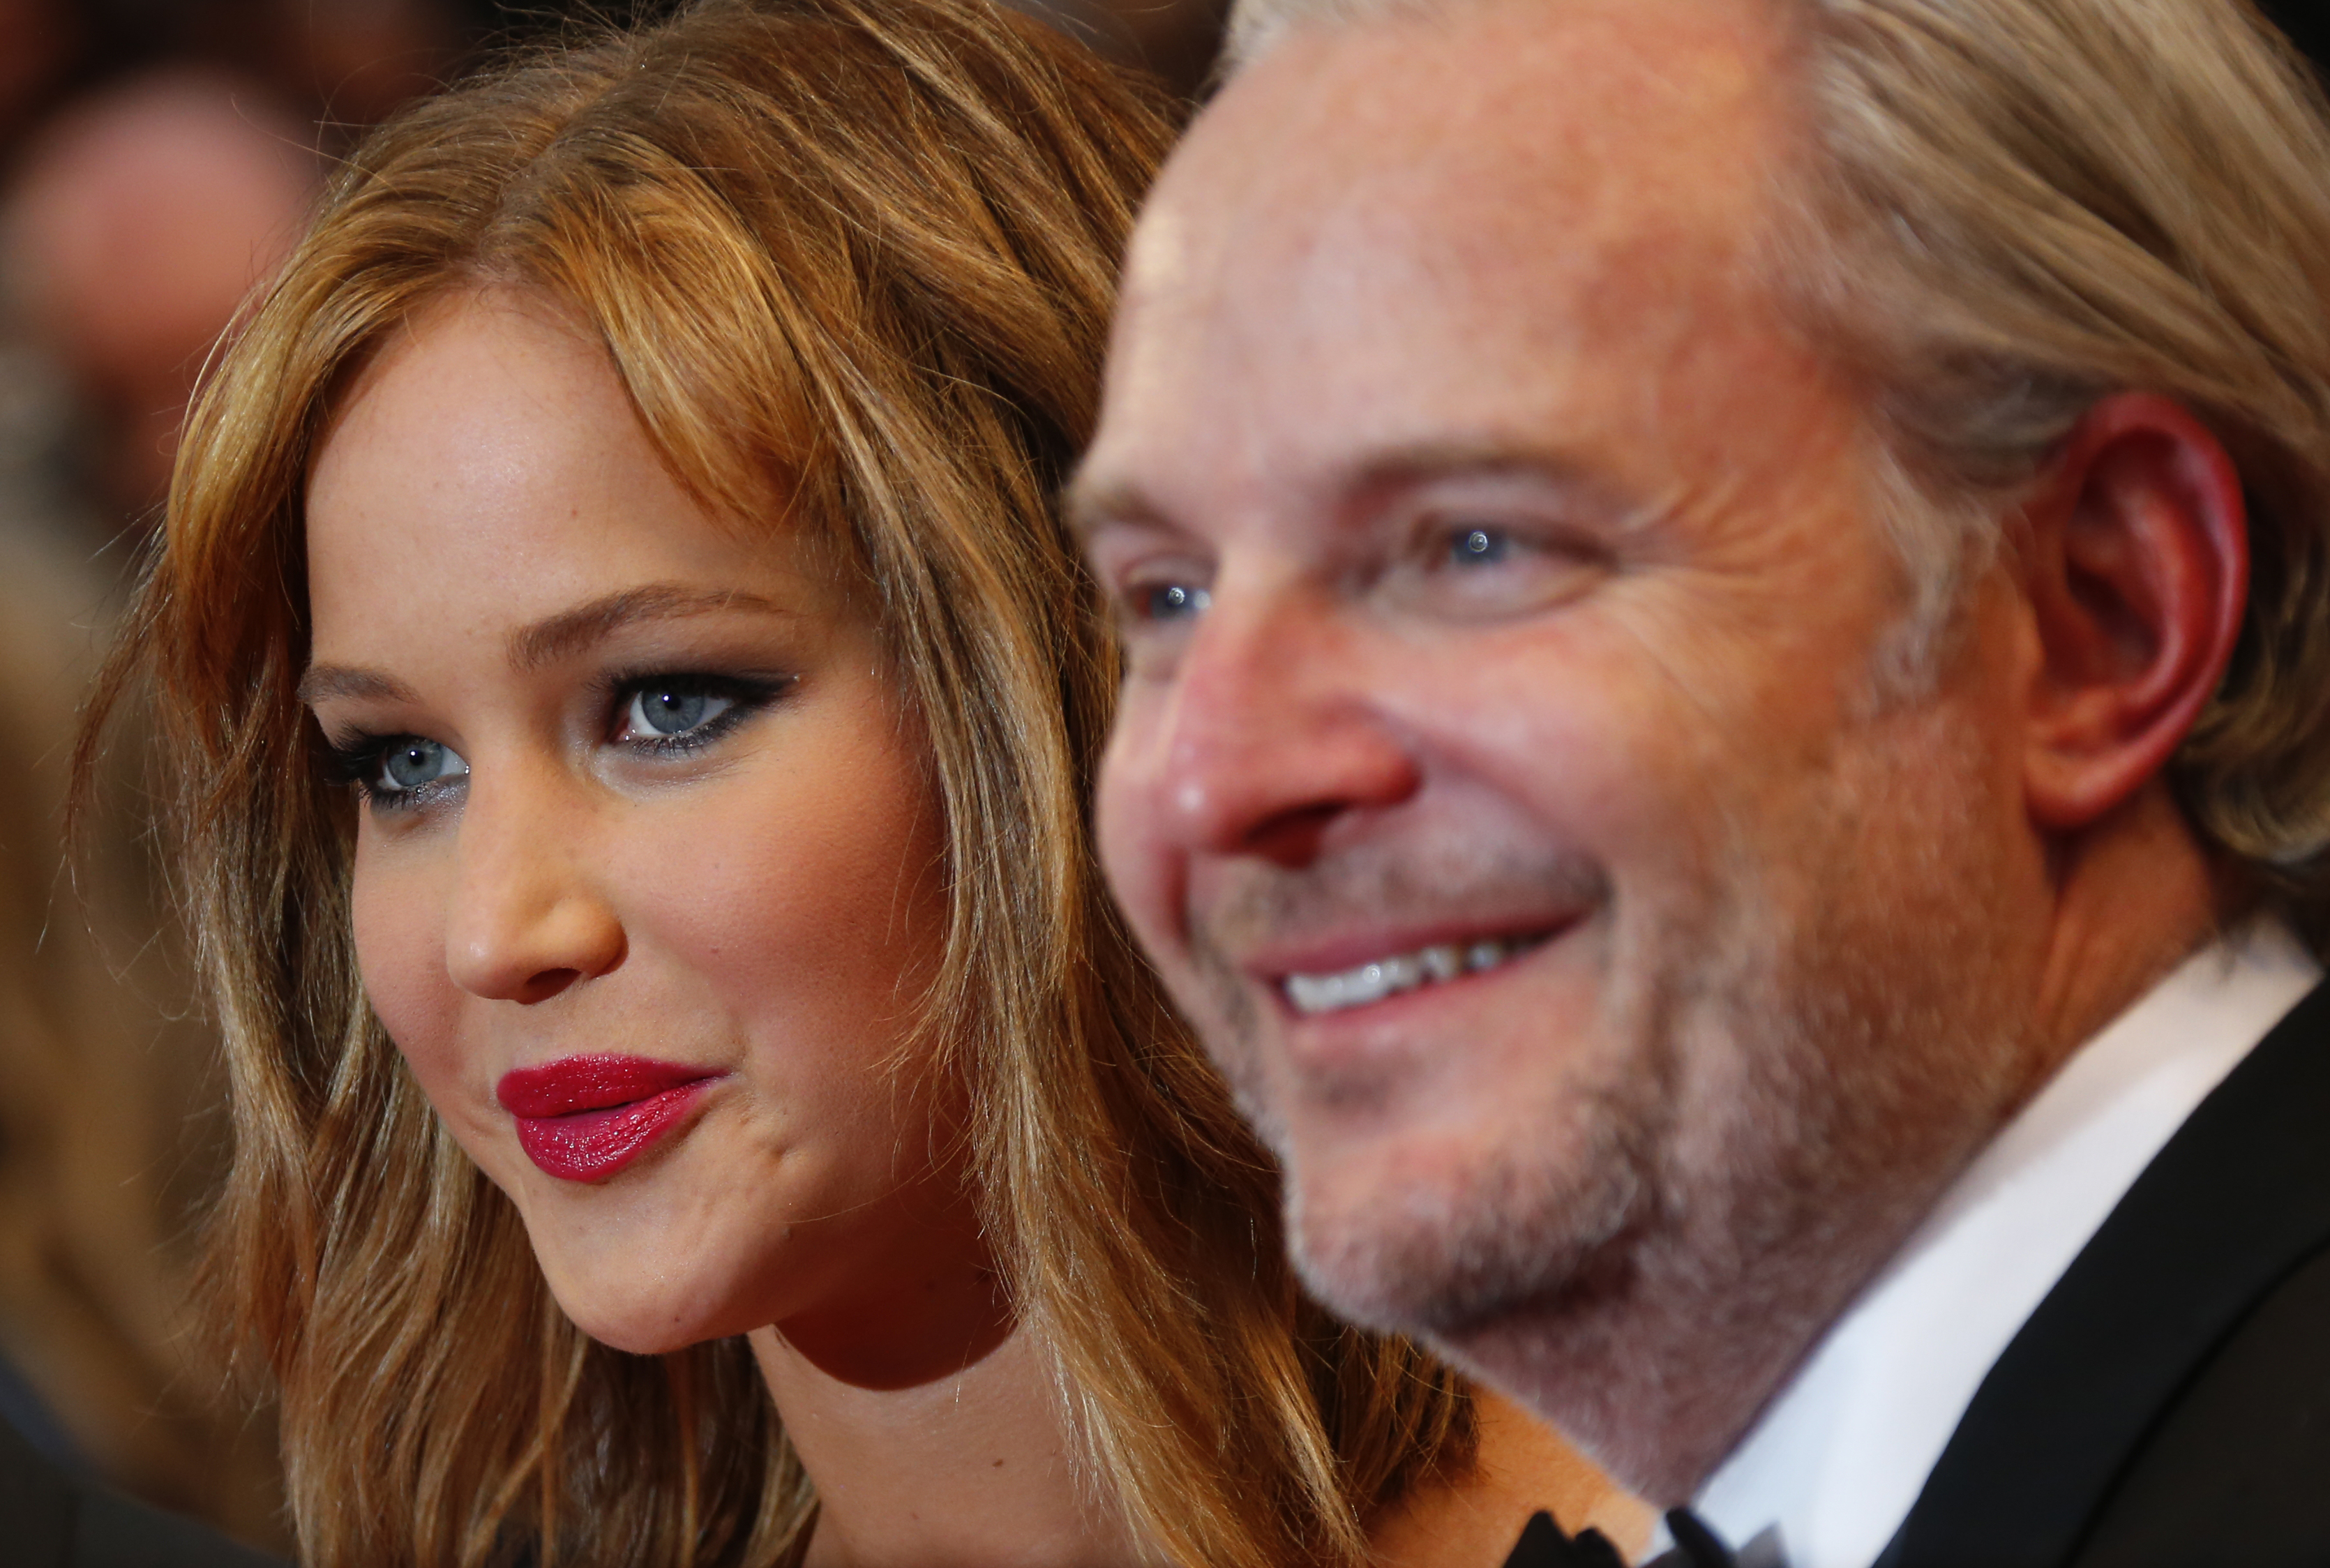 francis lawrence instagramfrancis lawrence wikipedia, francis lawrence and jennifer lawrence, francis lawrence wiki, francis lawrence vimeo, francis lawrence quotes, francis lawrence filmography, francis lawrence related to jennifer lawrence, francis lawrence director, francis lawrence email, francis lawrence and his daughter, francis lawrence richard, francis lawrence, francis lawrence daughter, francis lawrence net worth, francis lawrence imdb, francis lawrence twitter, francis lawrence movies, francis lawrence wife, francis lawrence hunger games, francis lawrence instagram